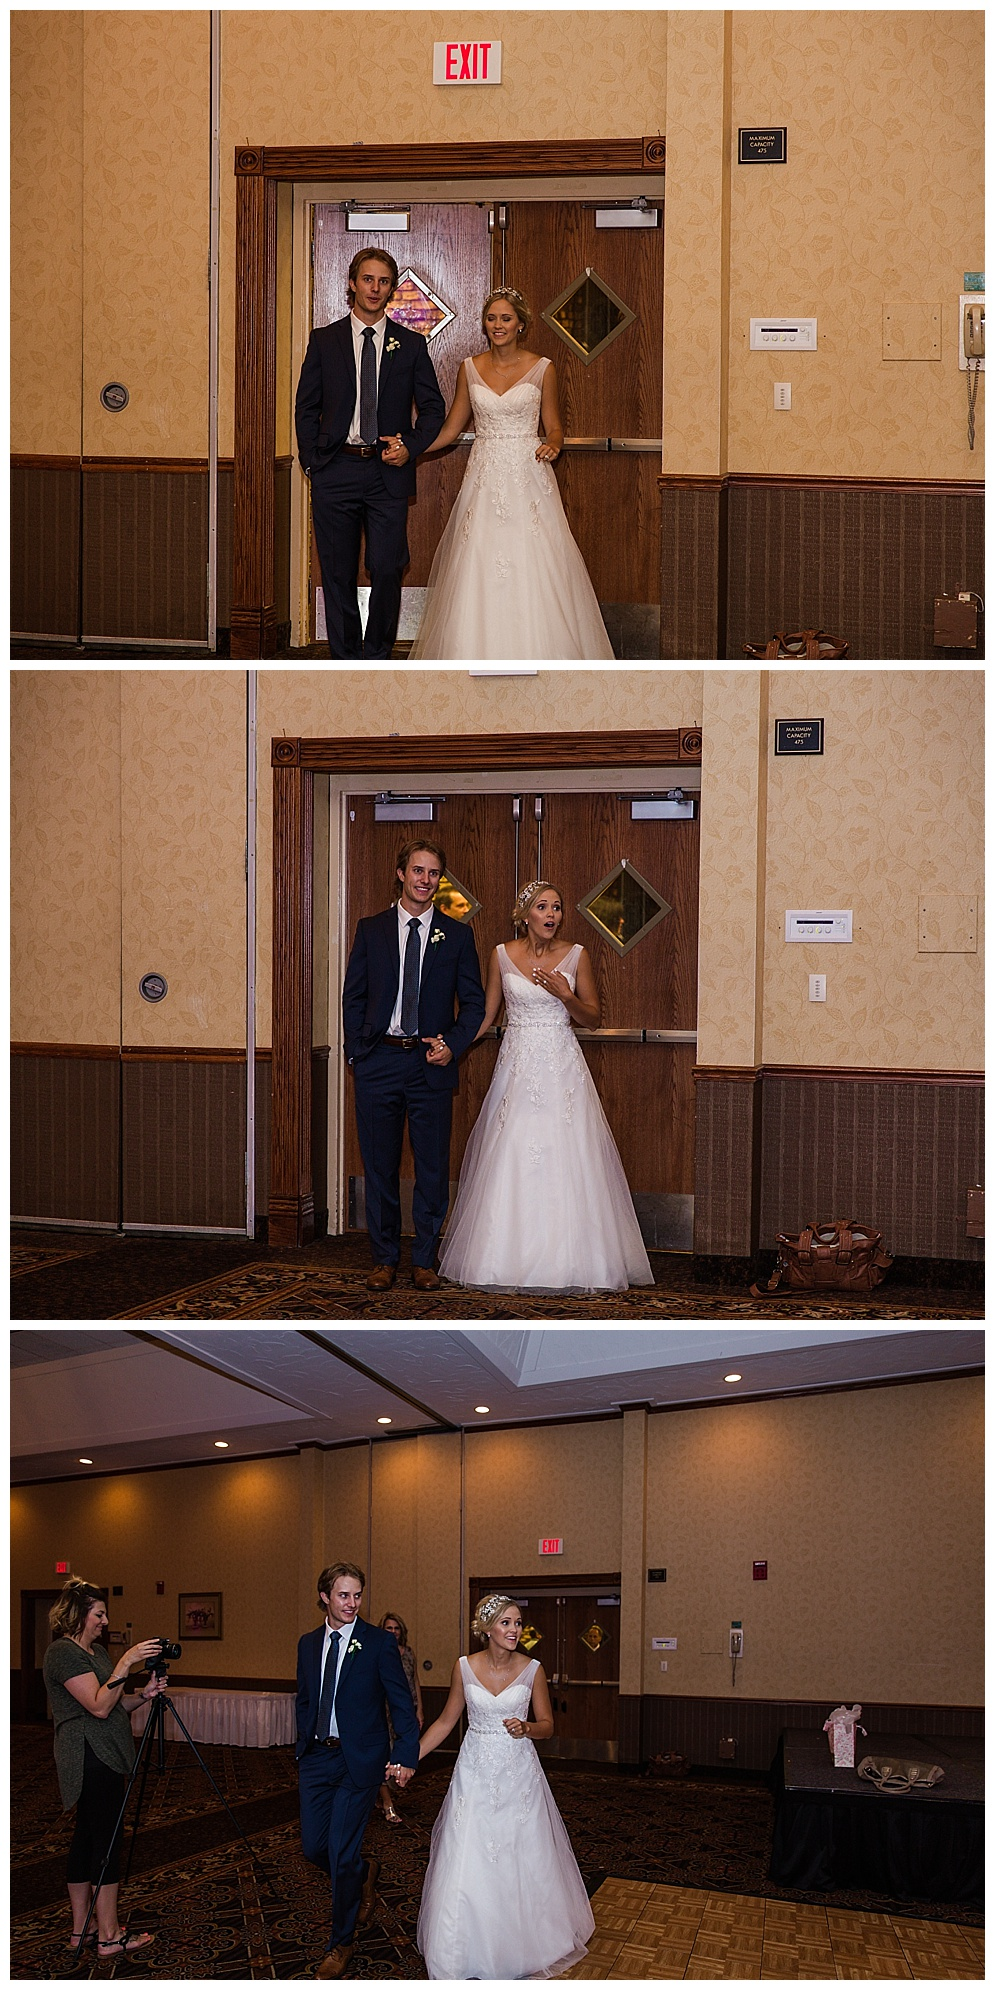 One of the many reasons I love the Ramkota, they close off the reception area until the Bride & Groom have had a chance to see it first! Mallory's reaction was priceless :)